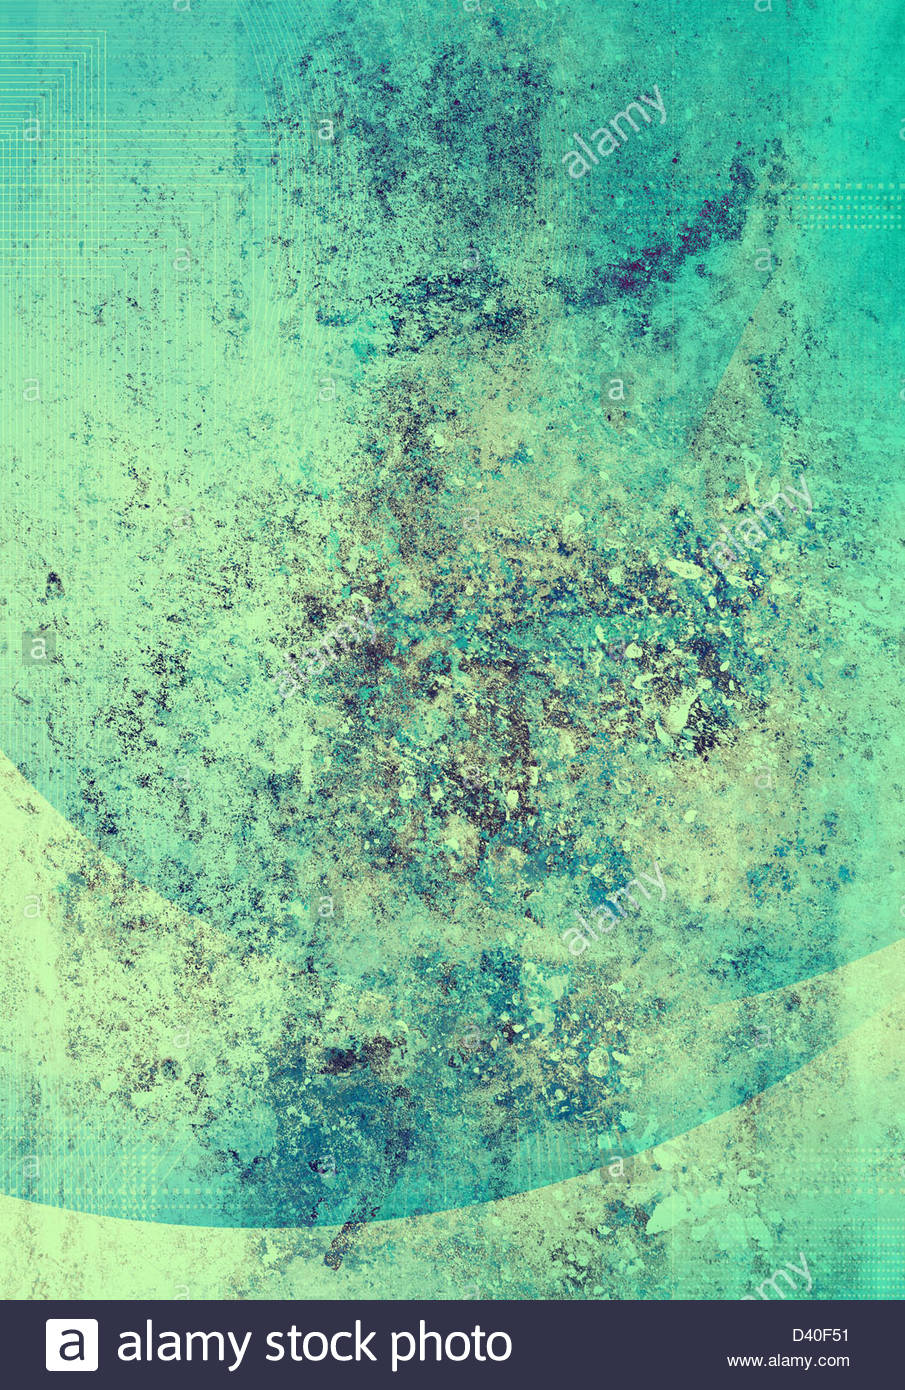 abstract textured art - Stock Image